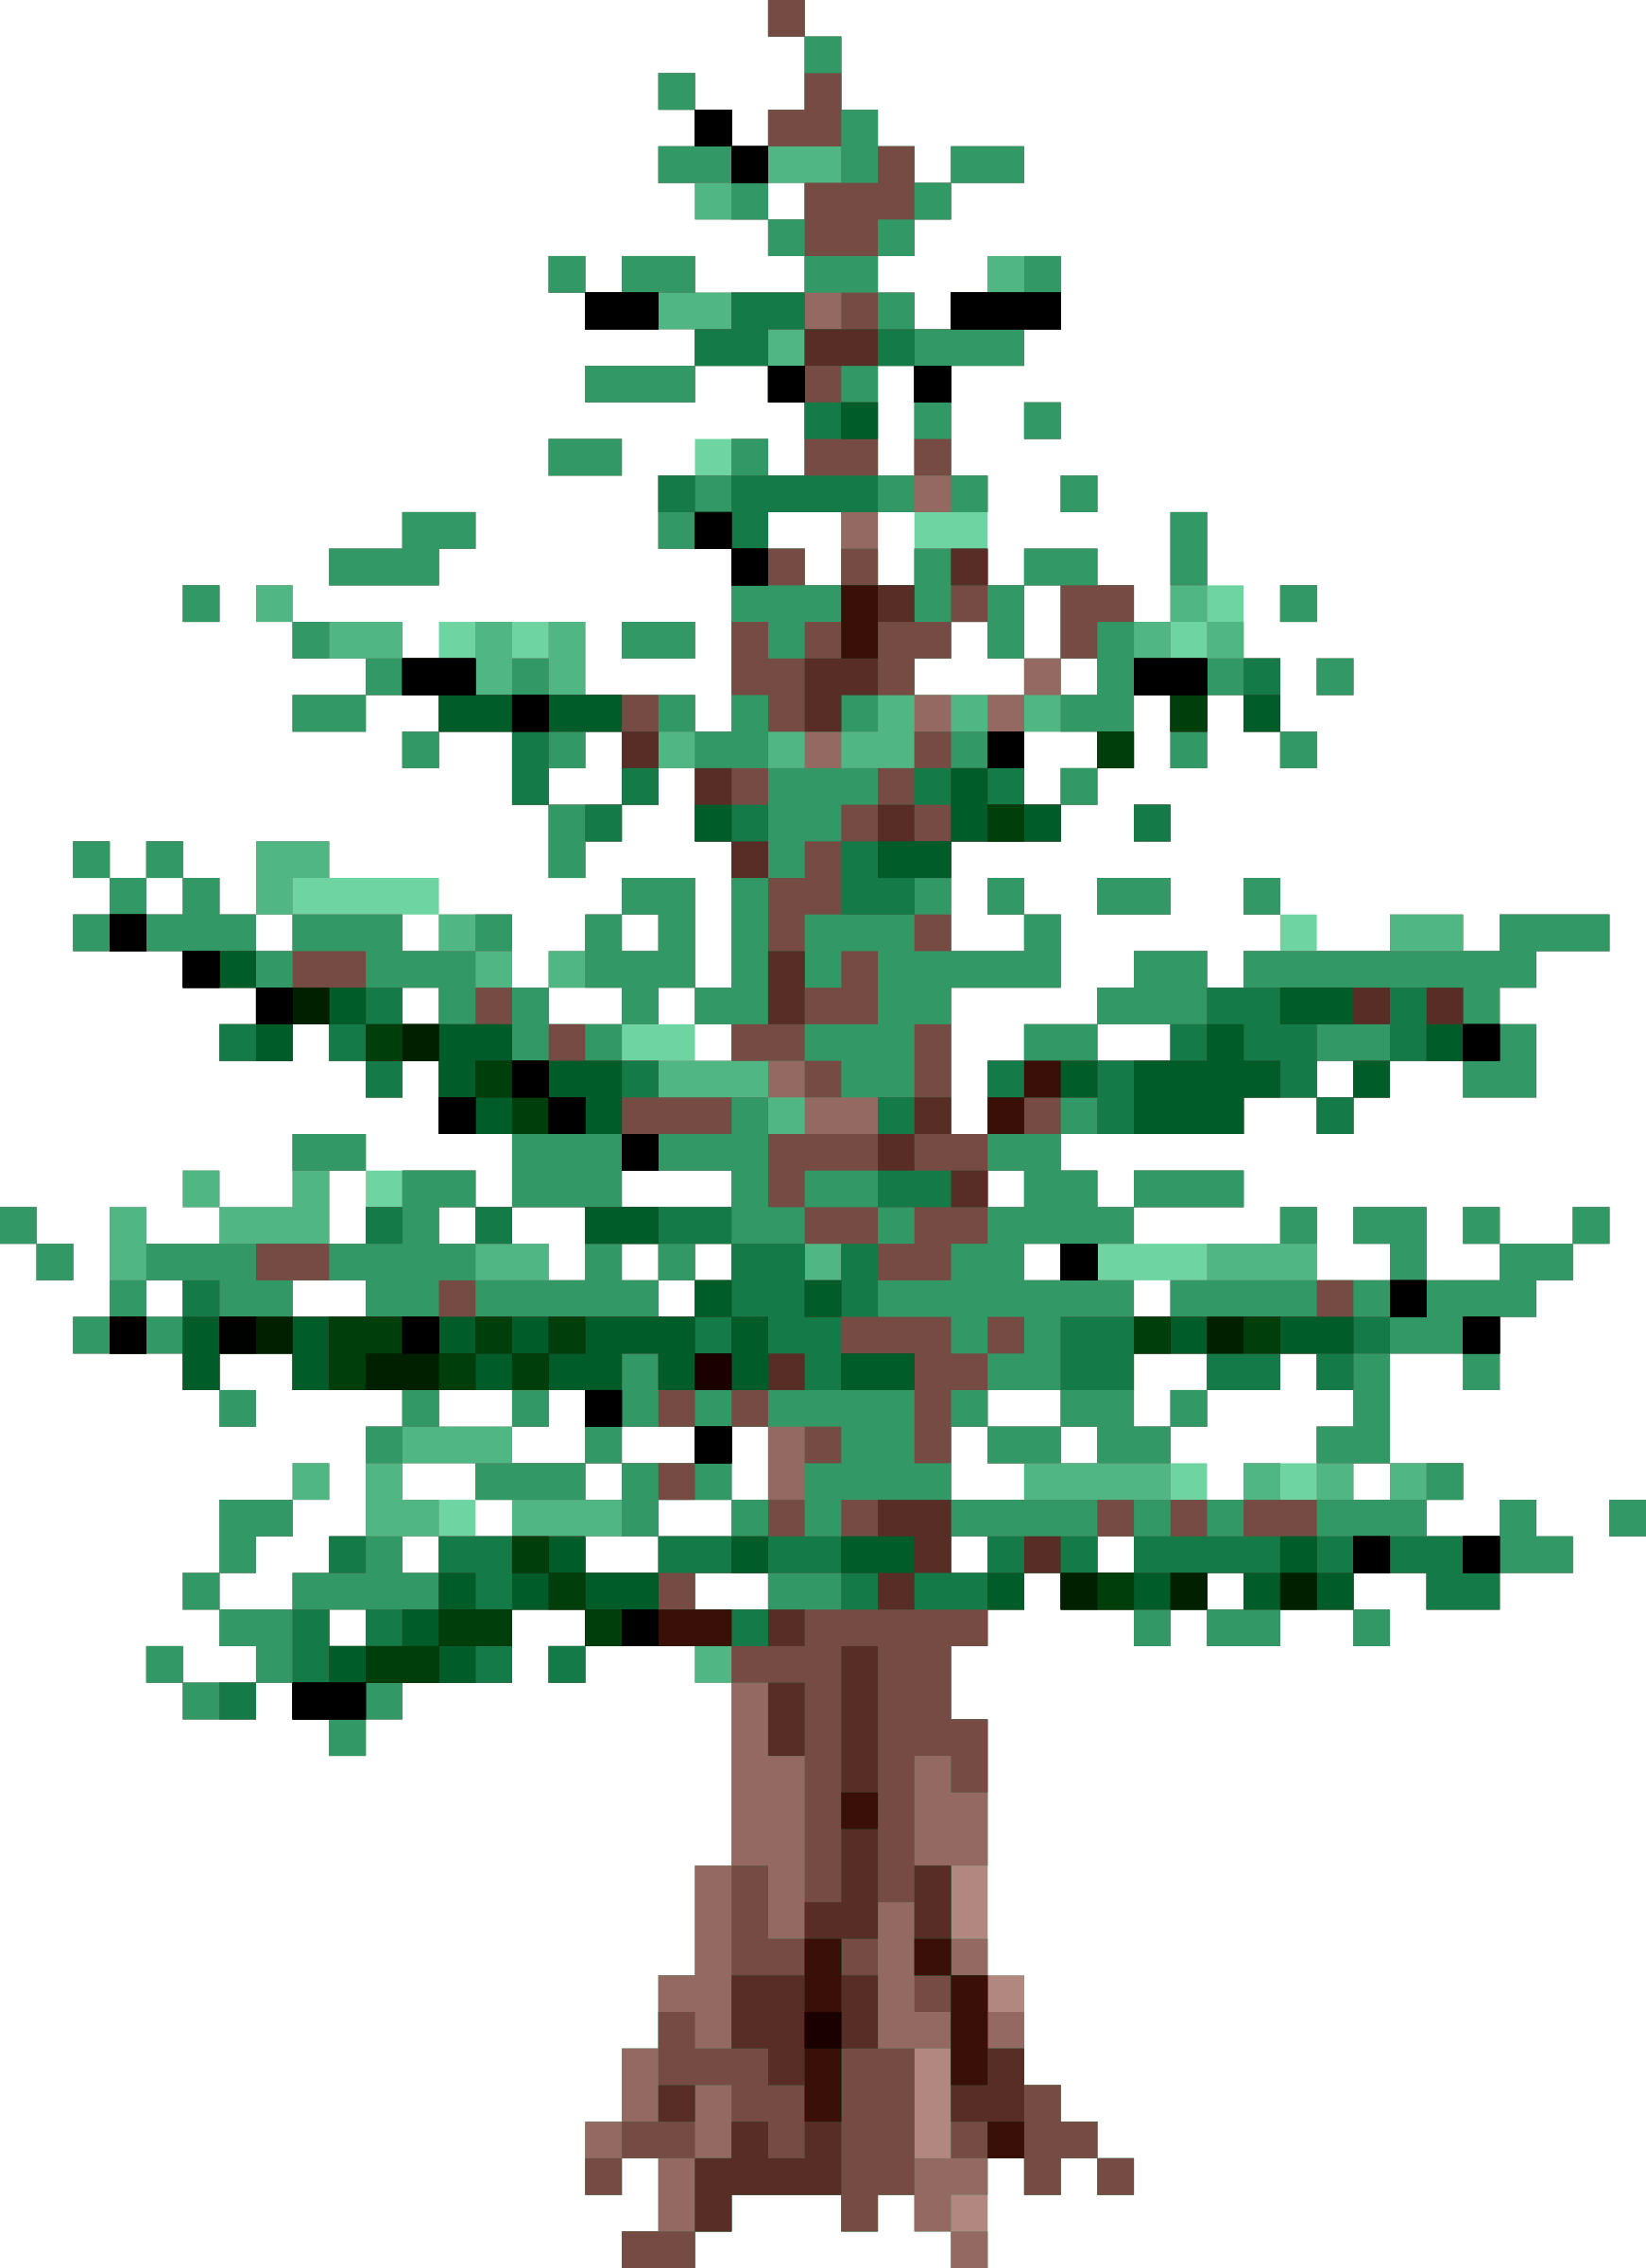 Pixel Pine Tree by isaiah658